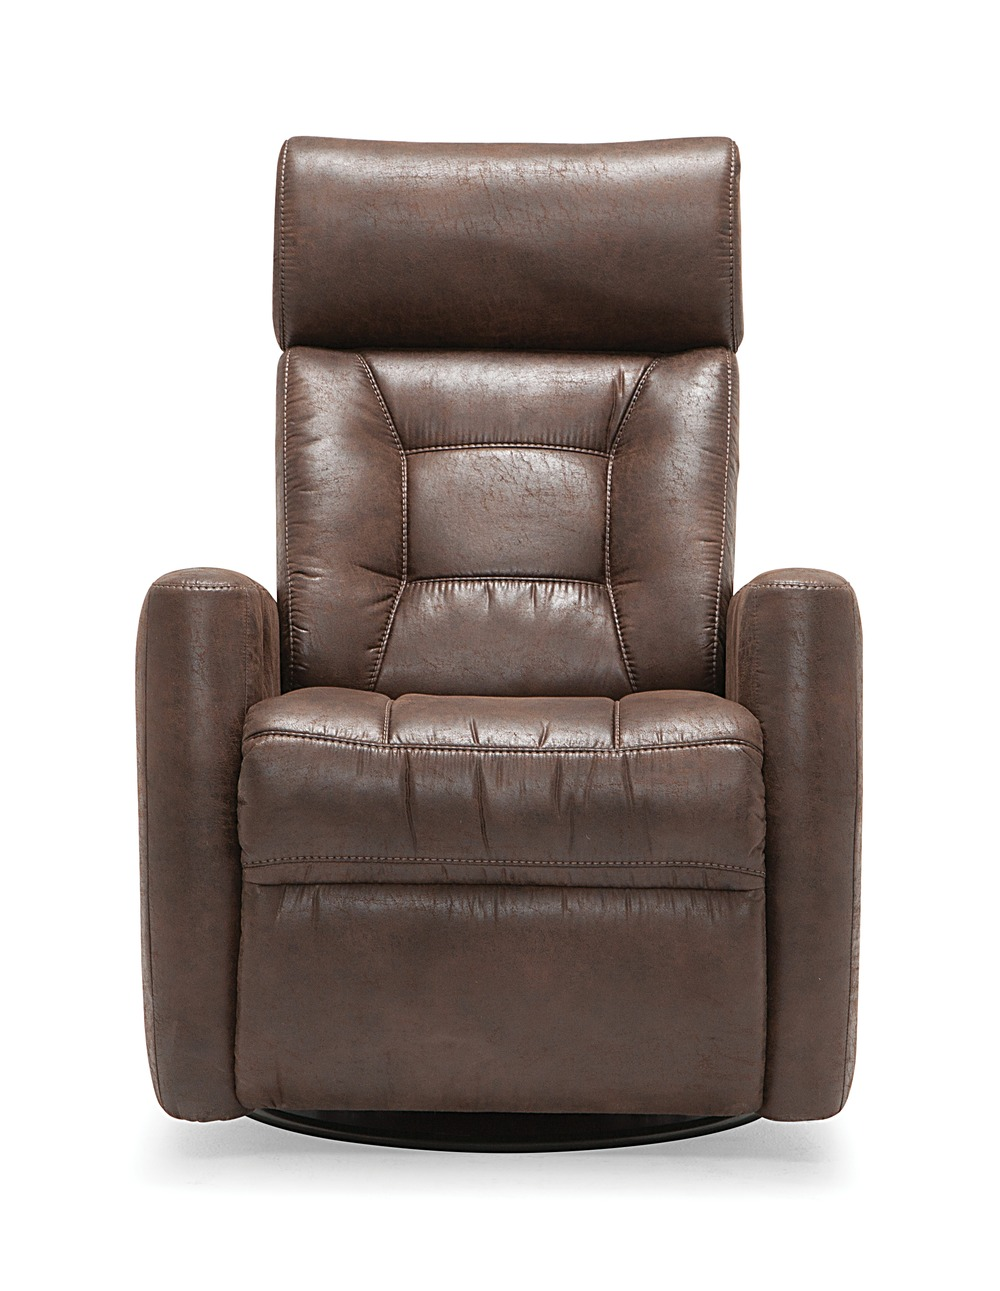 Baltic Leather Power Recliner Amp Headrest Swivel Glider